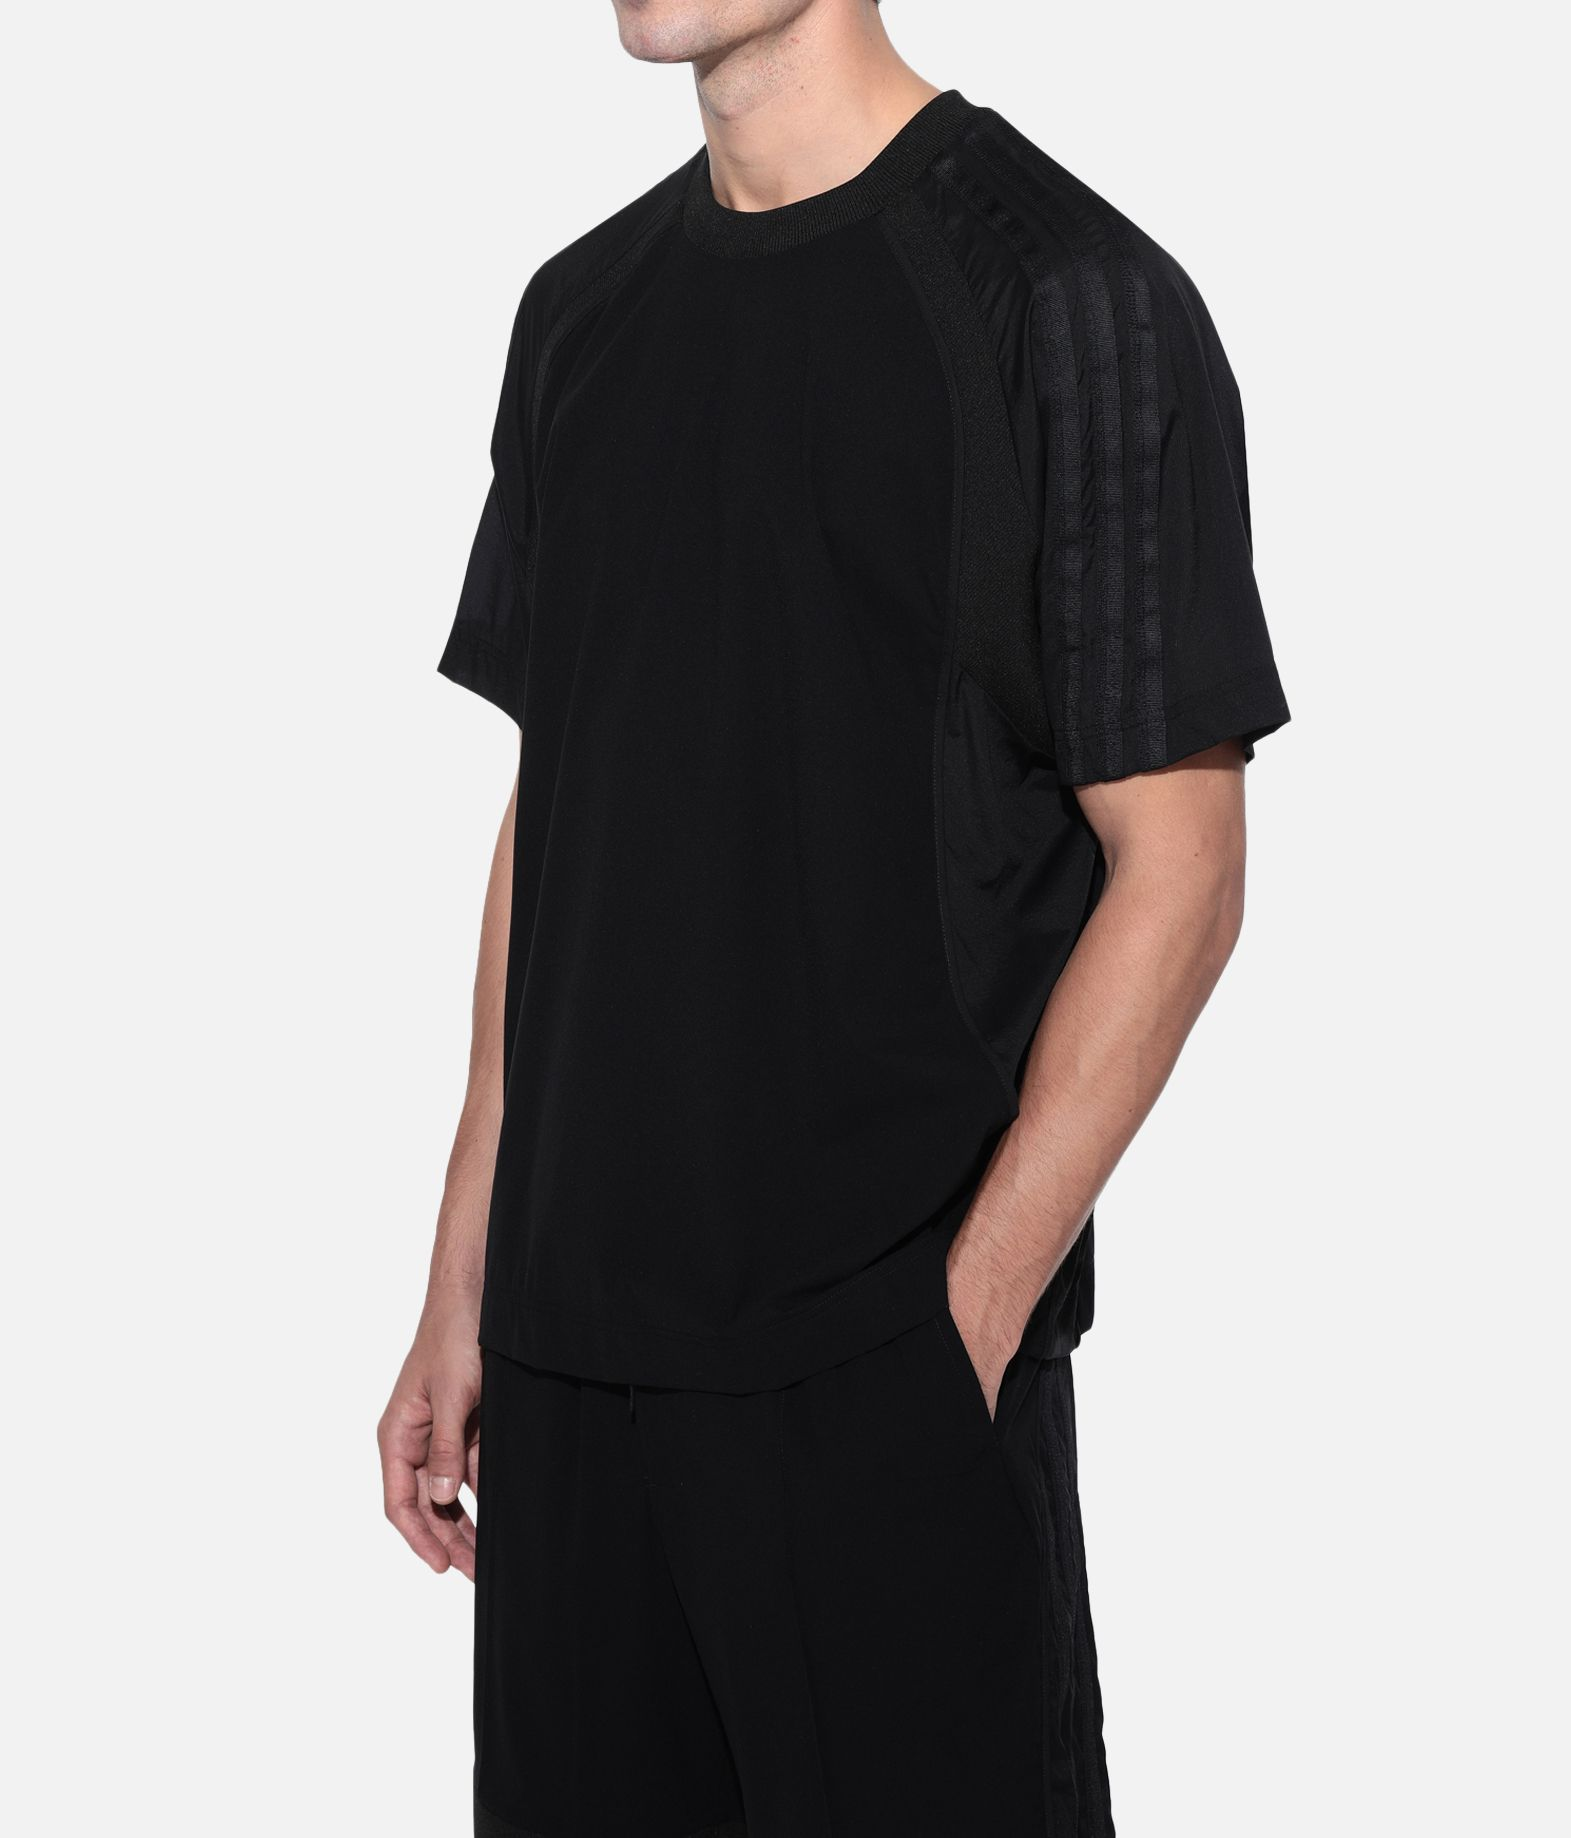 Y-3 Y-3 3-Stripes Material Mix Tee Short sleeve t-shirt Man e